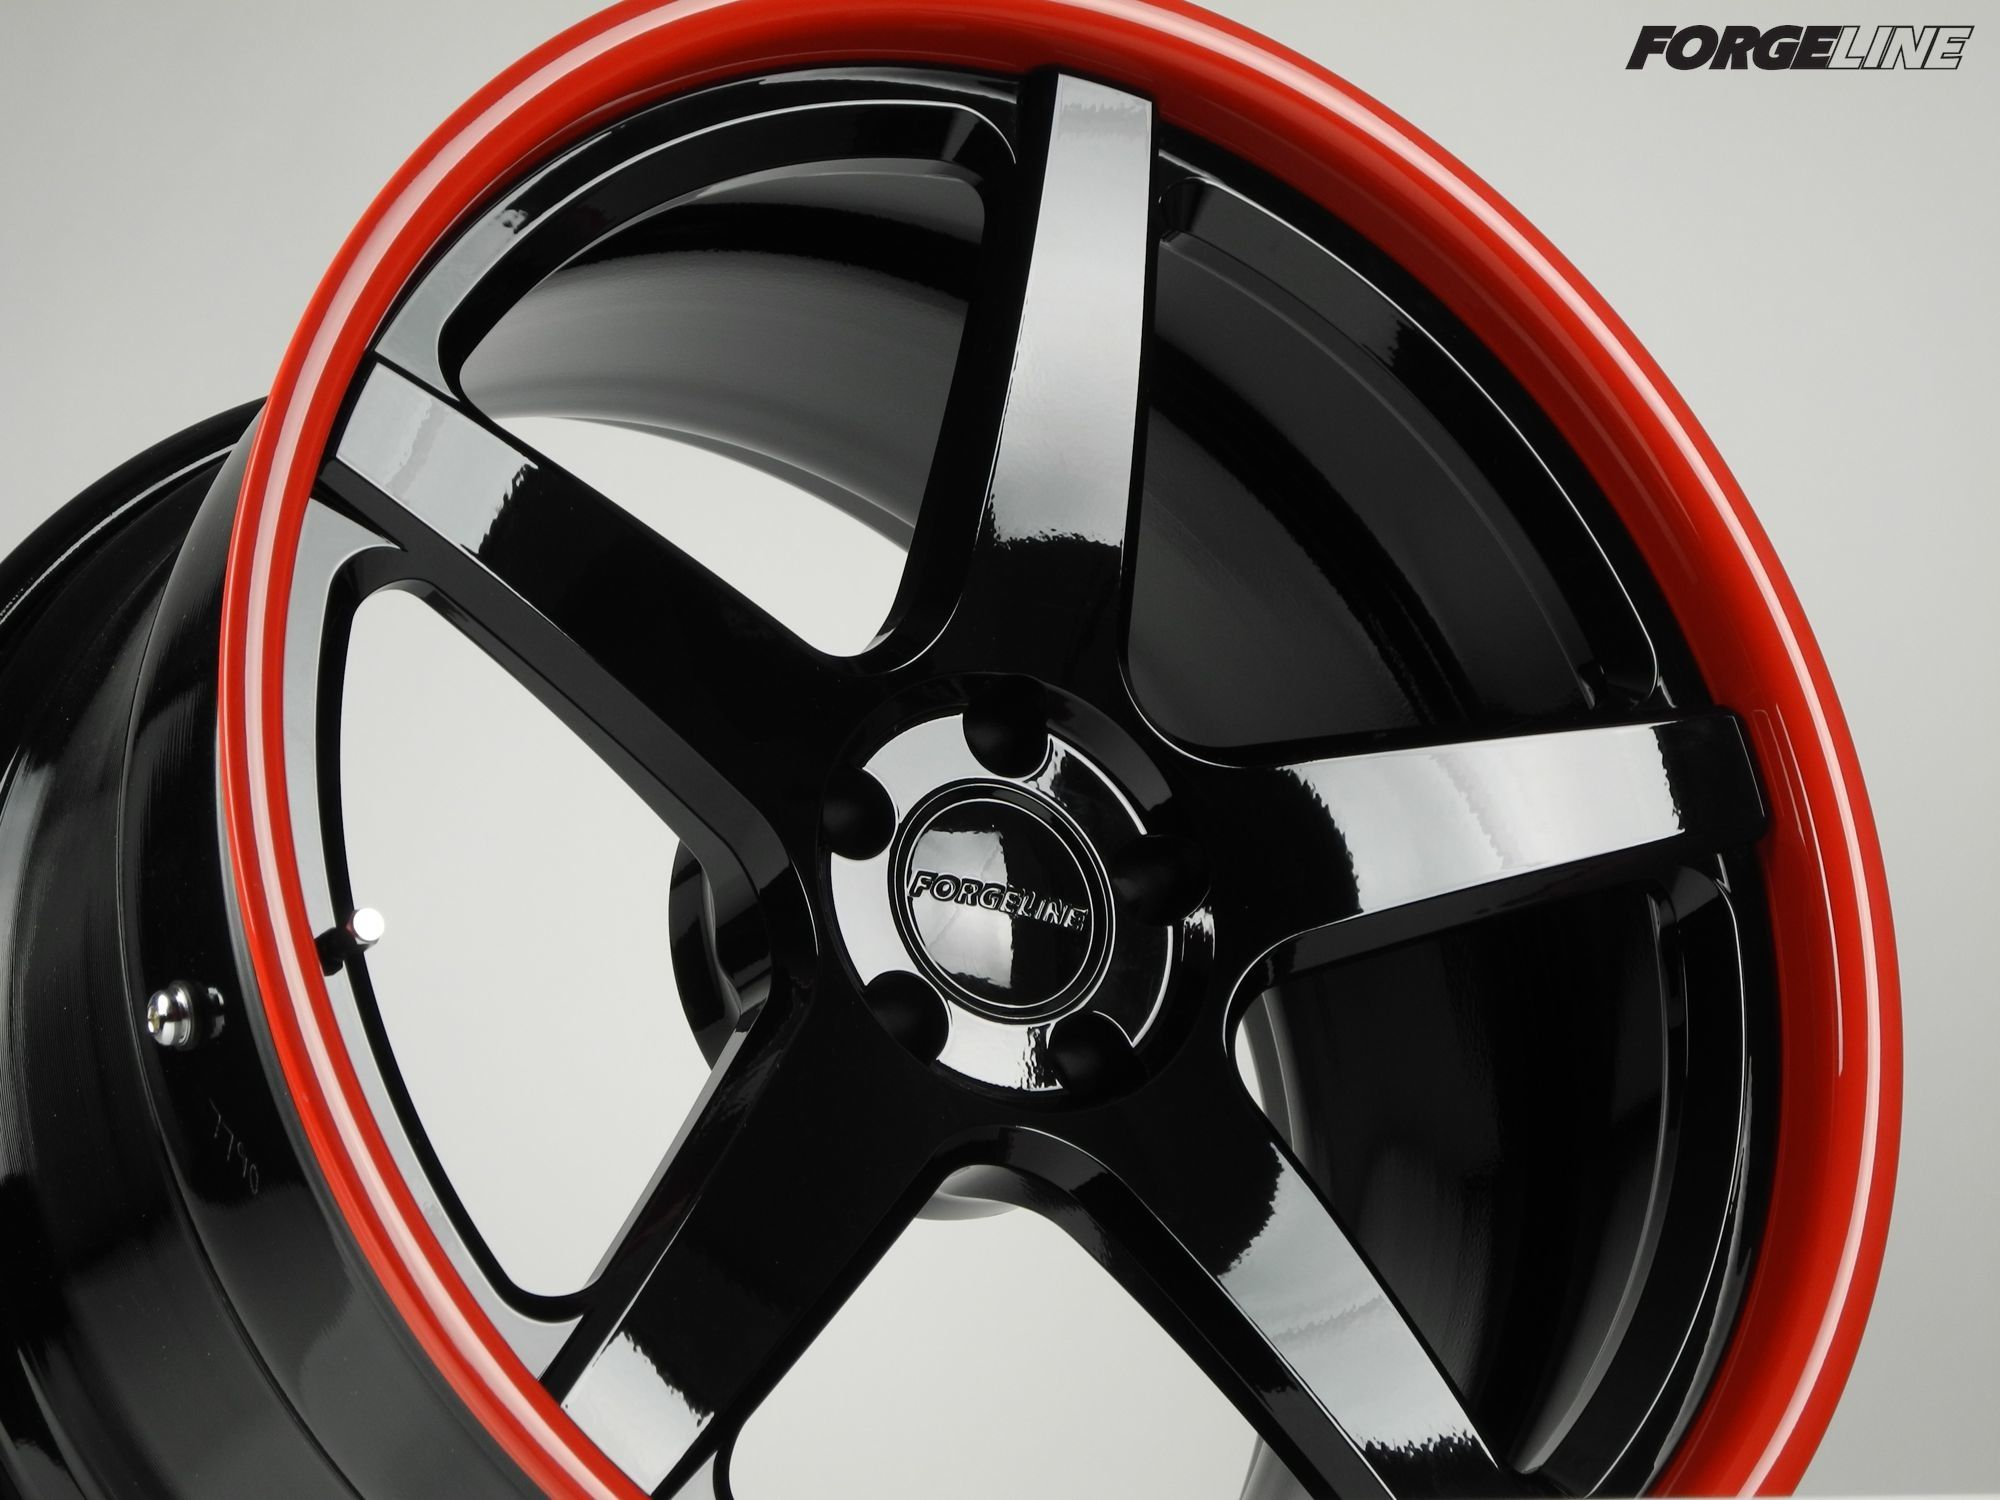 This forgeline cf3c concave wheel was built for a ferrari f430 and finished in gloss black